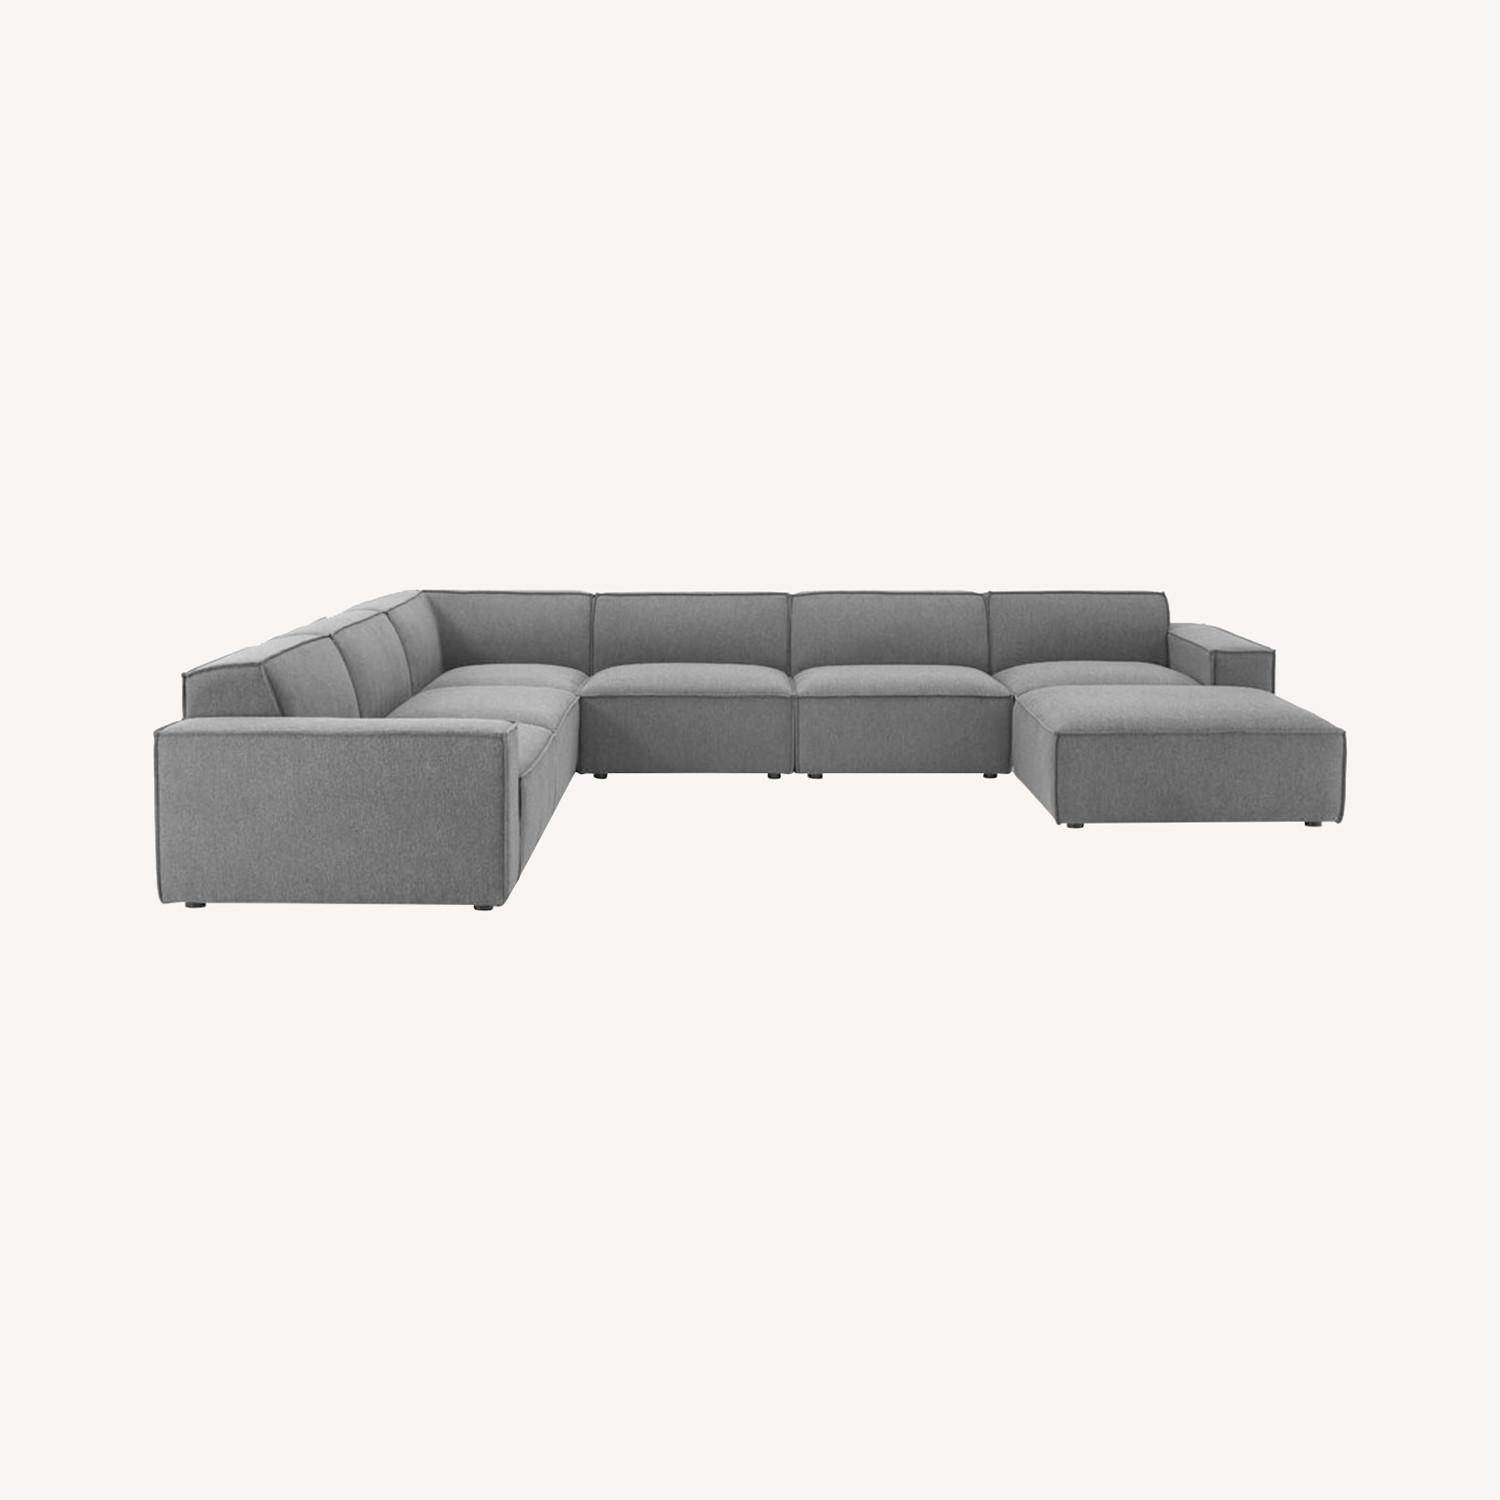 7-Piece Sectional Sofa In Charcoal Upholstery - image-13